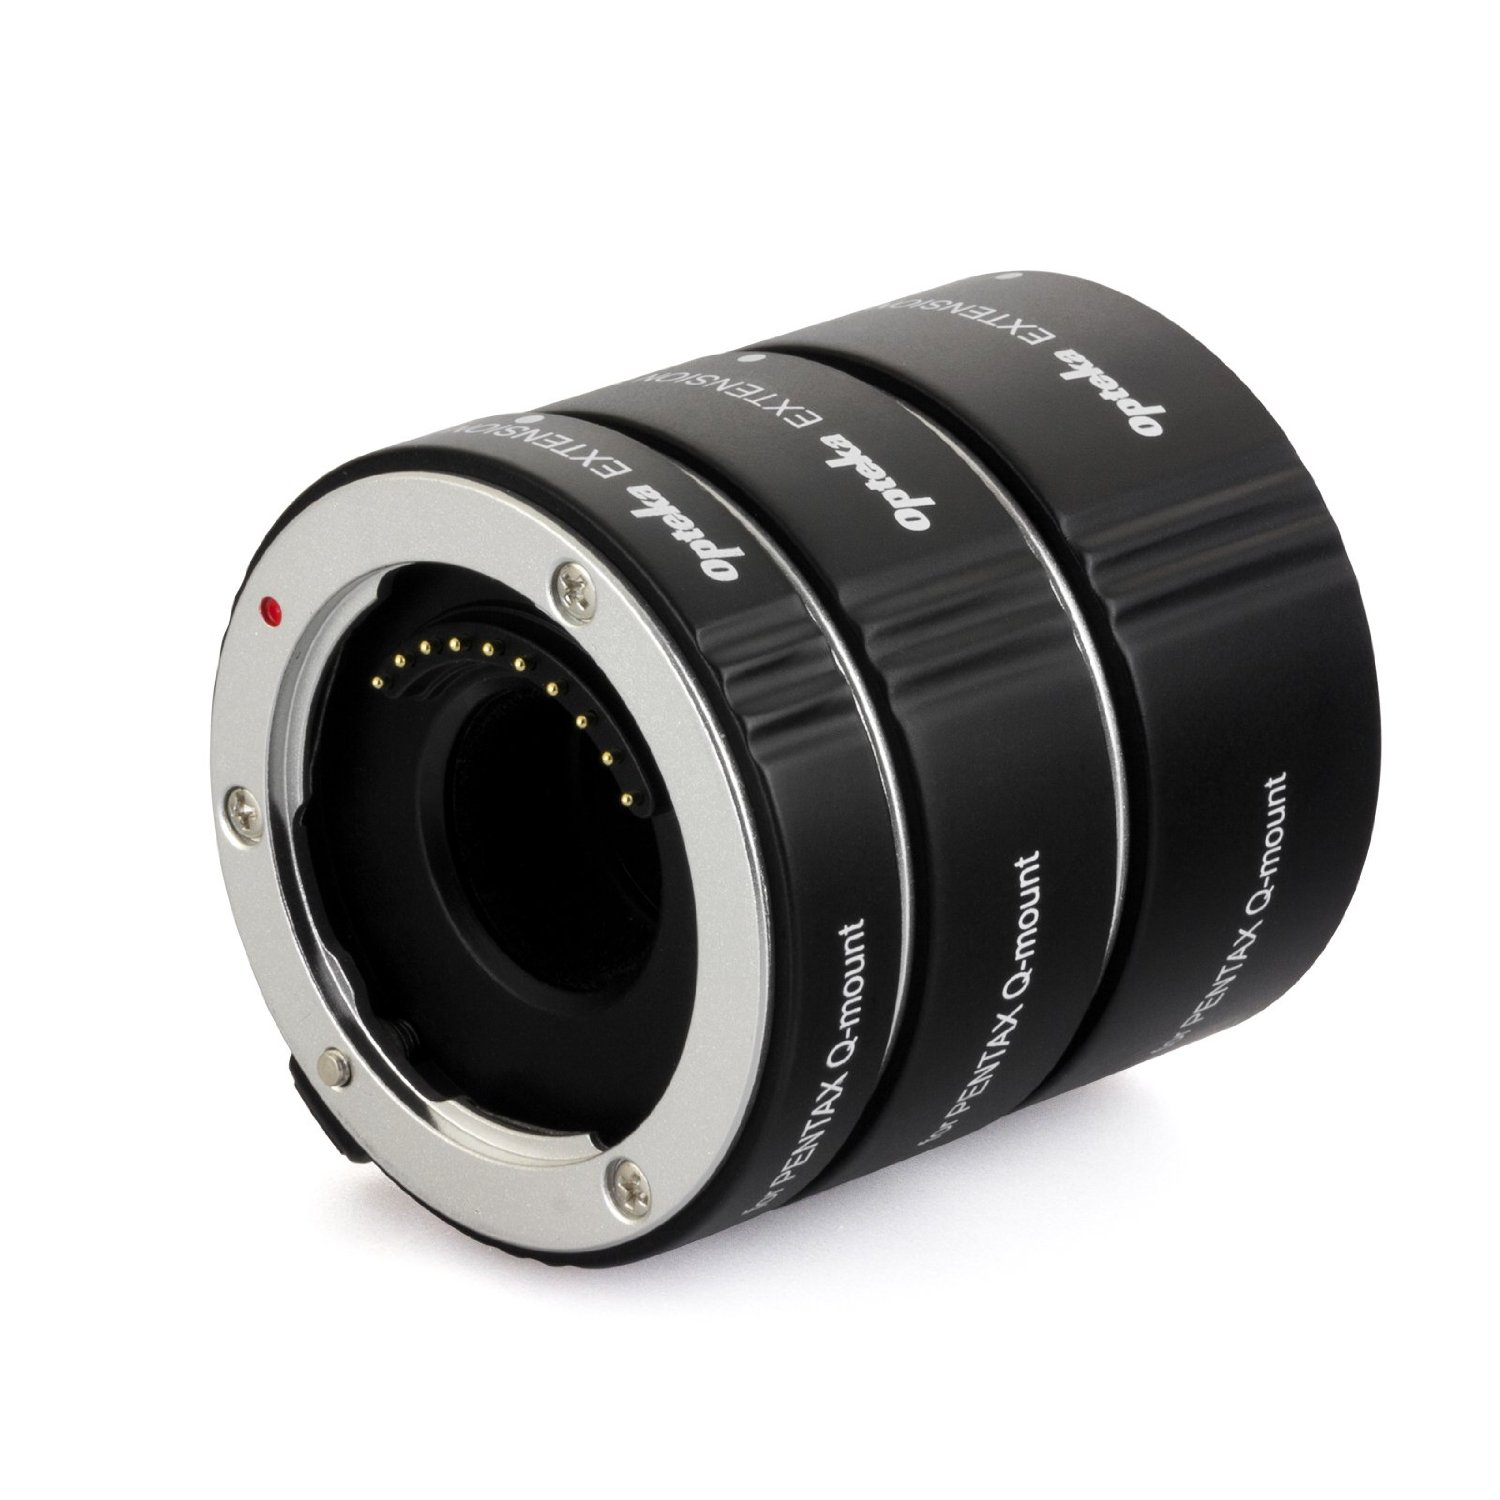 Opteka Auto Focus DG EX Macro Extension Tube Set for Pentax Q Series Mirrorless Cameras (Includes 10mm, 16mm, 21mm Tubes)